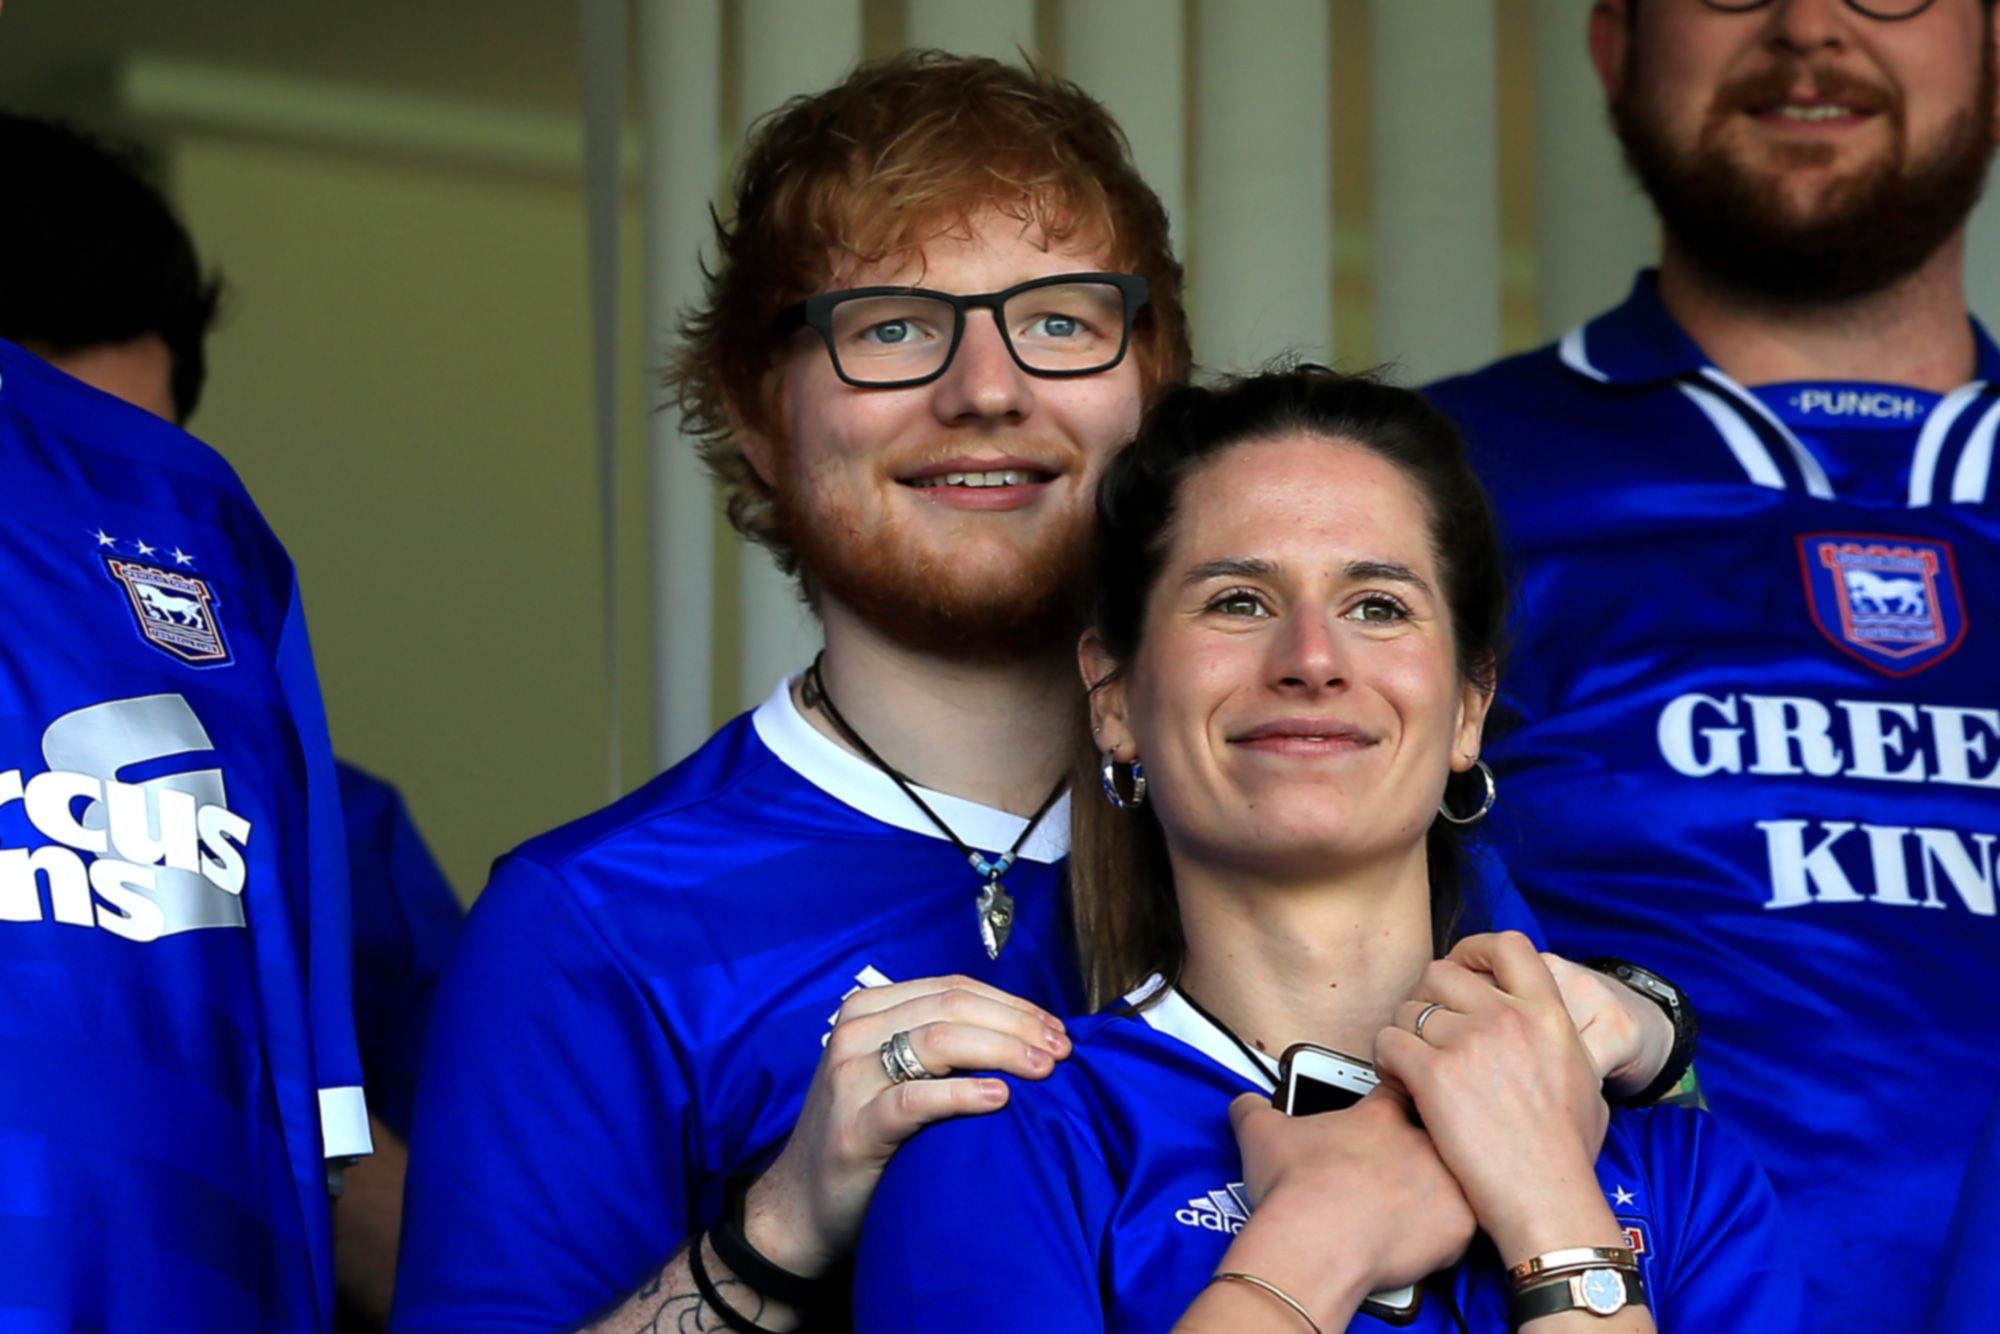 Ed Sheerans Wife Pregnant - Baby Due Any Day Now After